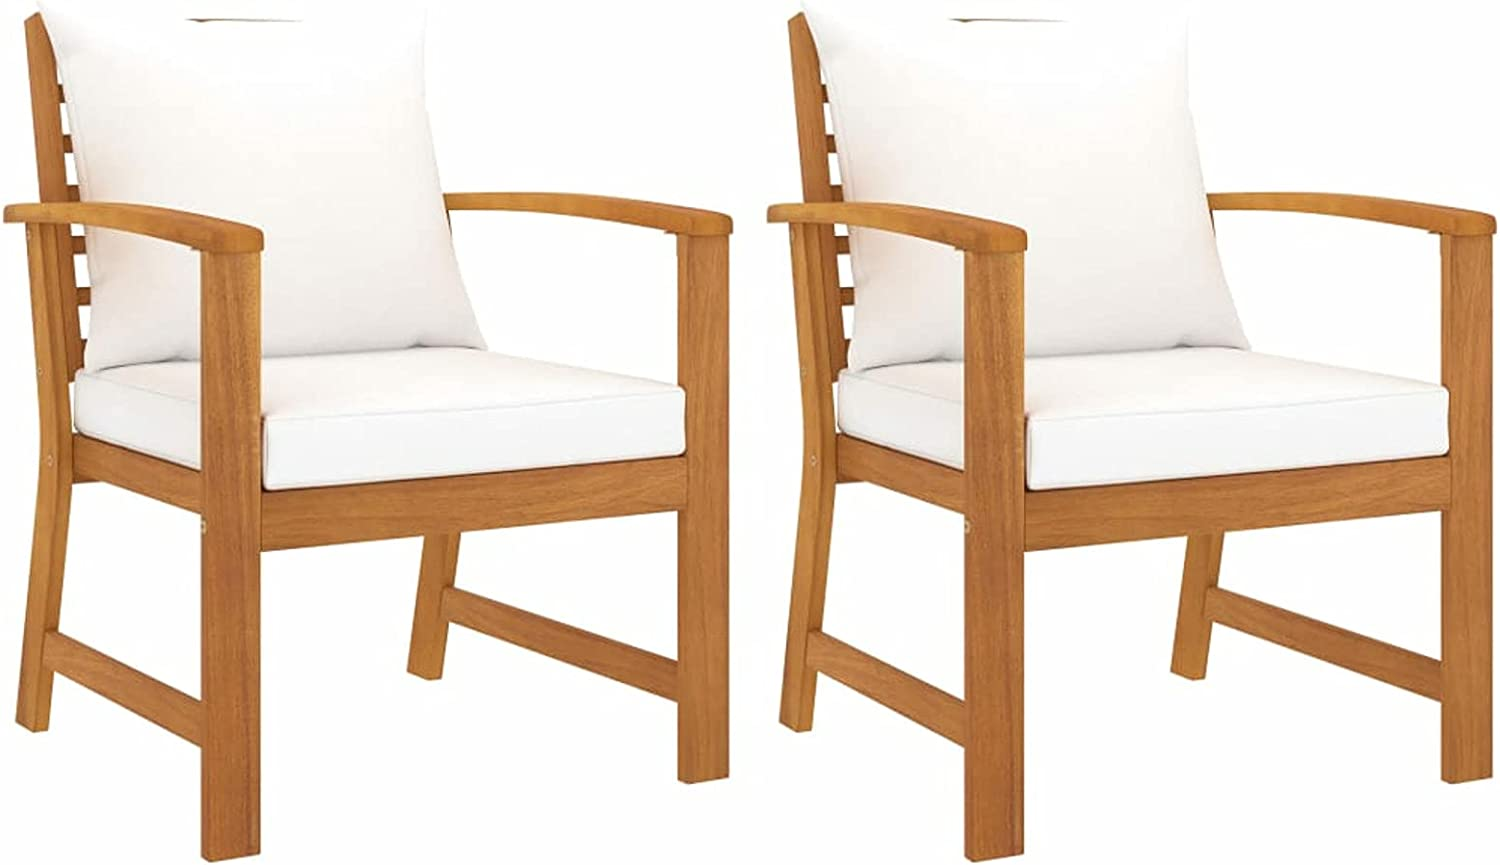 Tidyard 2 Piece Garden Chairs with White Cushion Acacia Wood Armchair Wooden Outdoor Dining Chair Patio Balcony Backyard Outdoor Furniture 23.8 x 23.8 x 31.9 Inches (W x D x H)